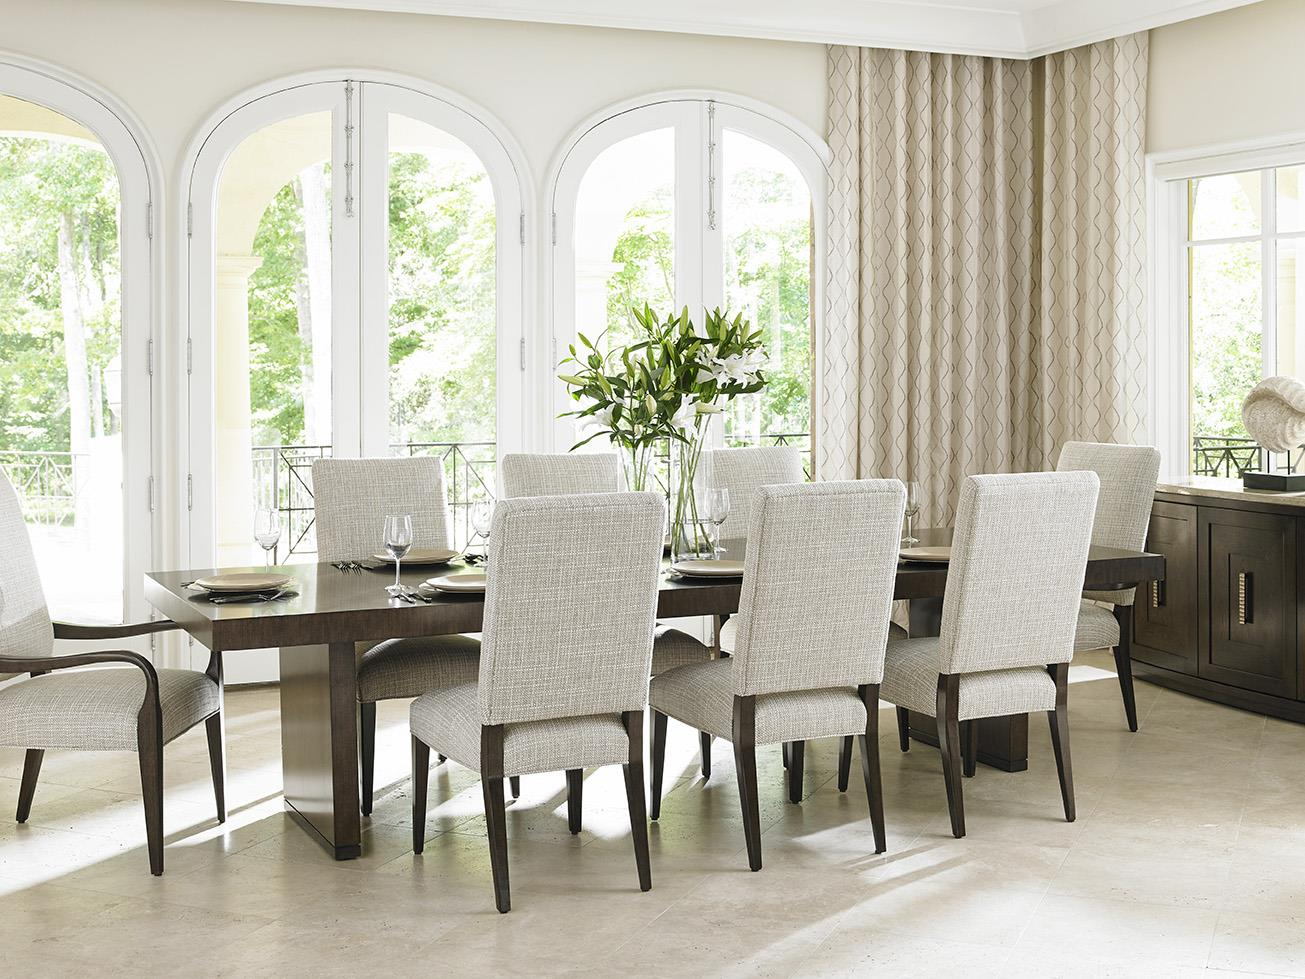 LAUREL CANYON Formal Dining Room Group by Lexington at Johnny Janosik